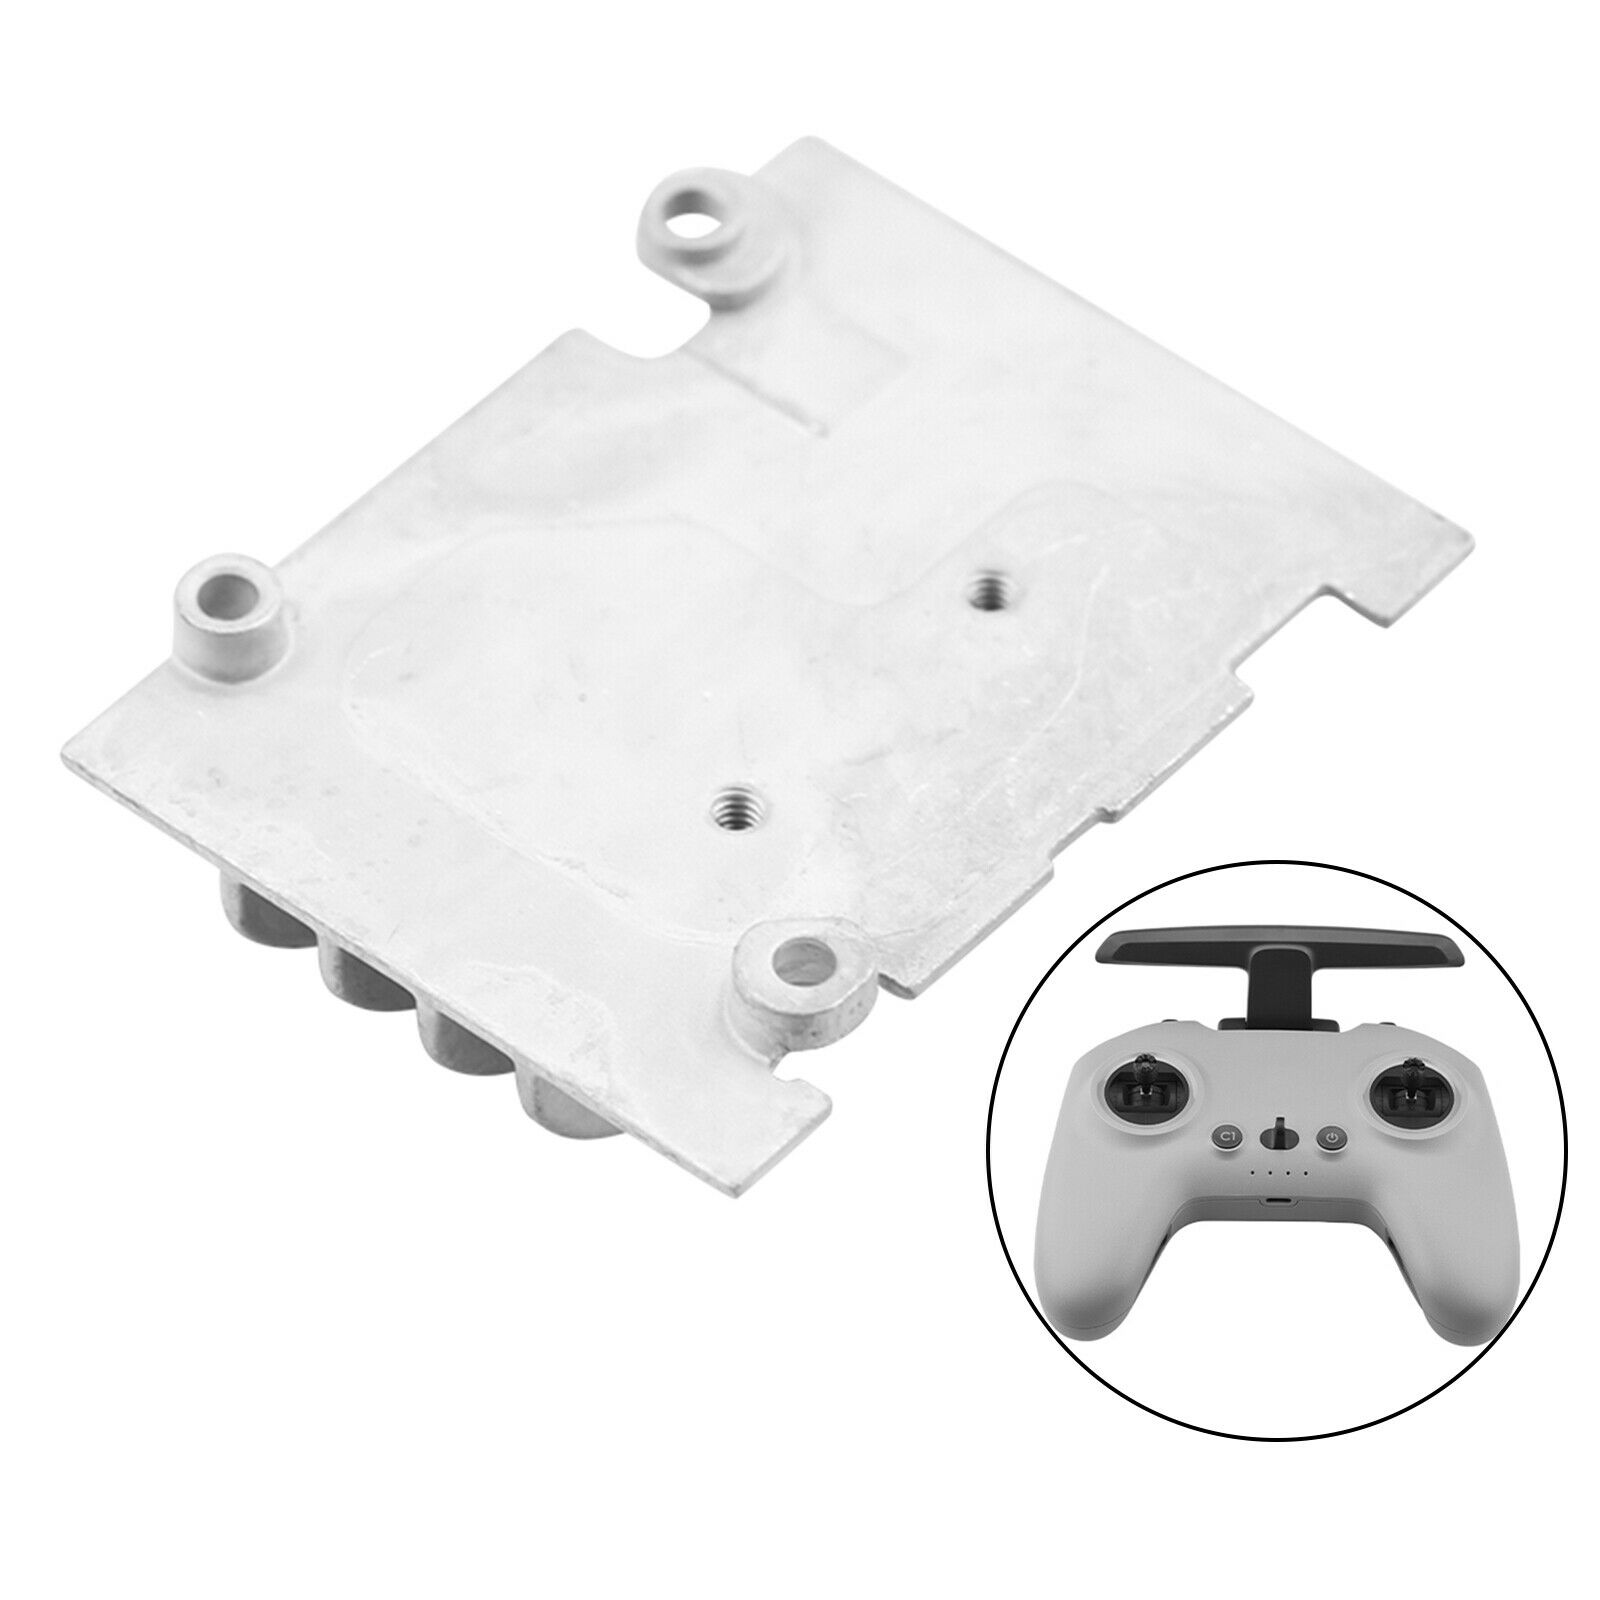 Heat Sink for DJI FPV Combo Remote Controller Parts Replacement Accessory